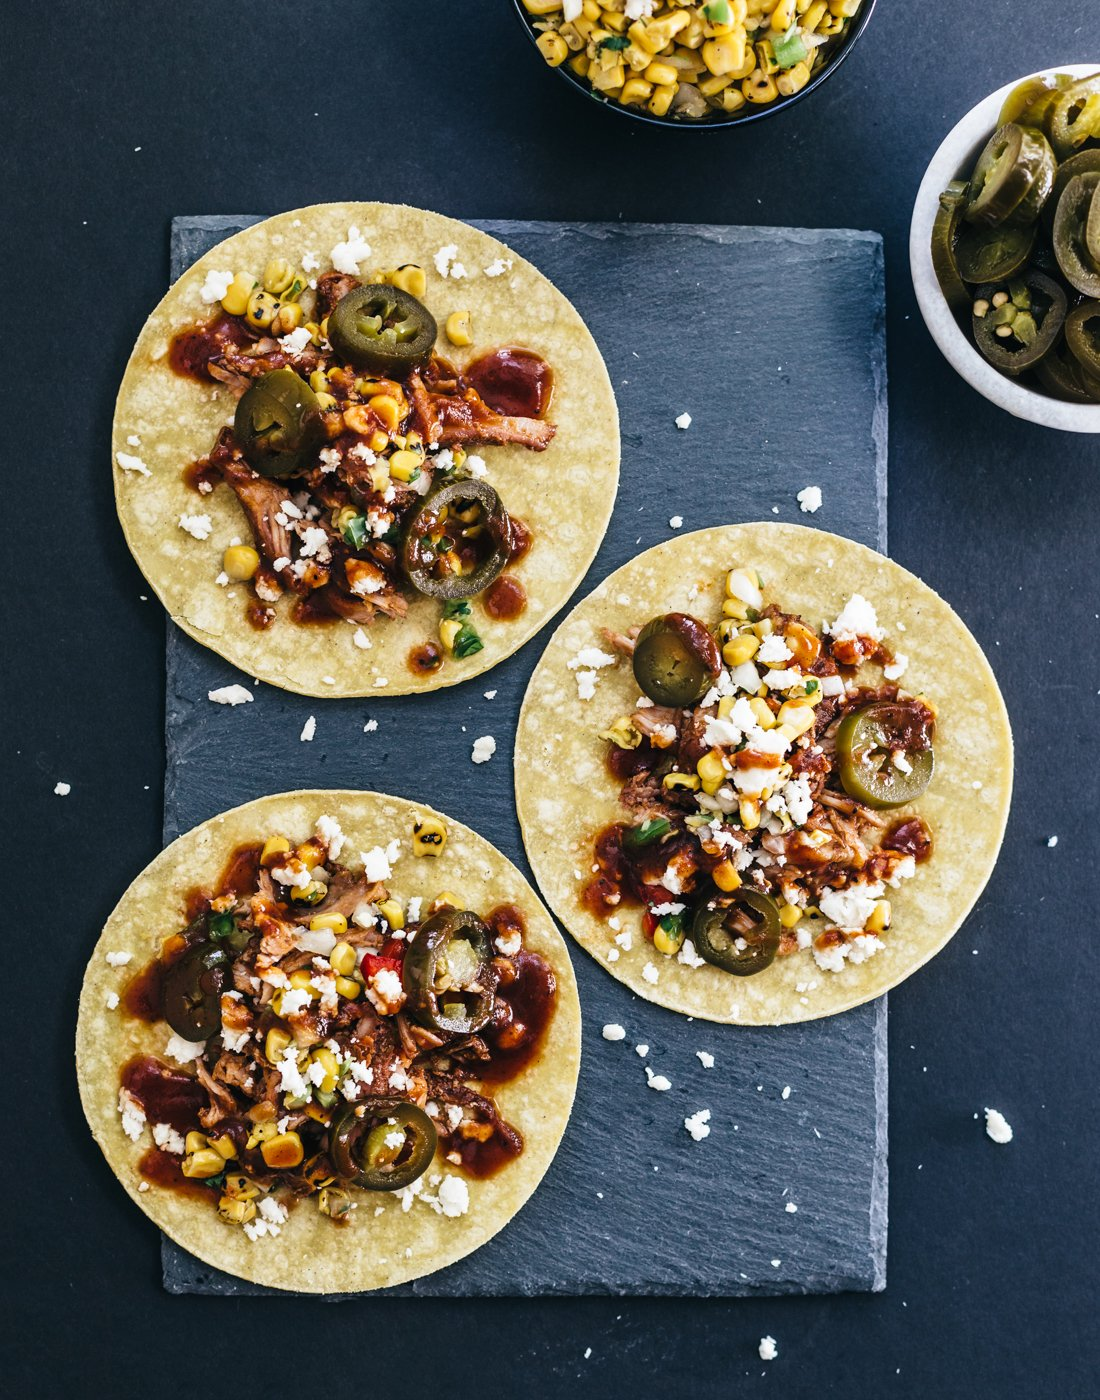 warsteiner dunkle, bbq pulled pork taco, southern cooking blog, the kentucky gent, summer bbq taco recipes